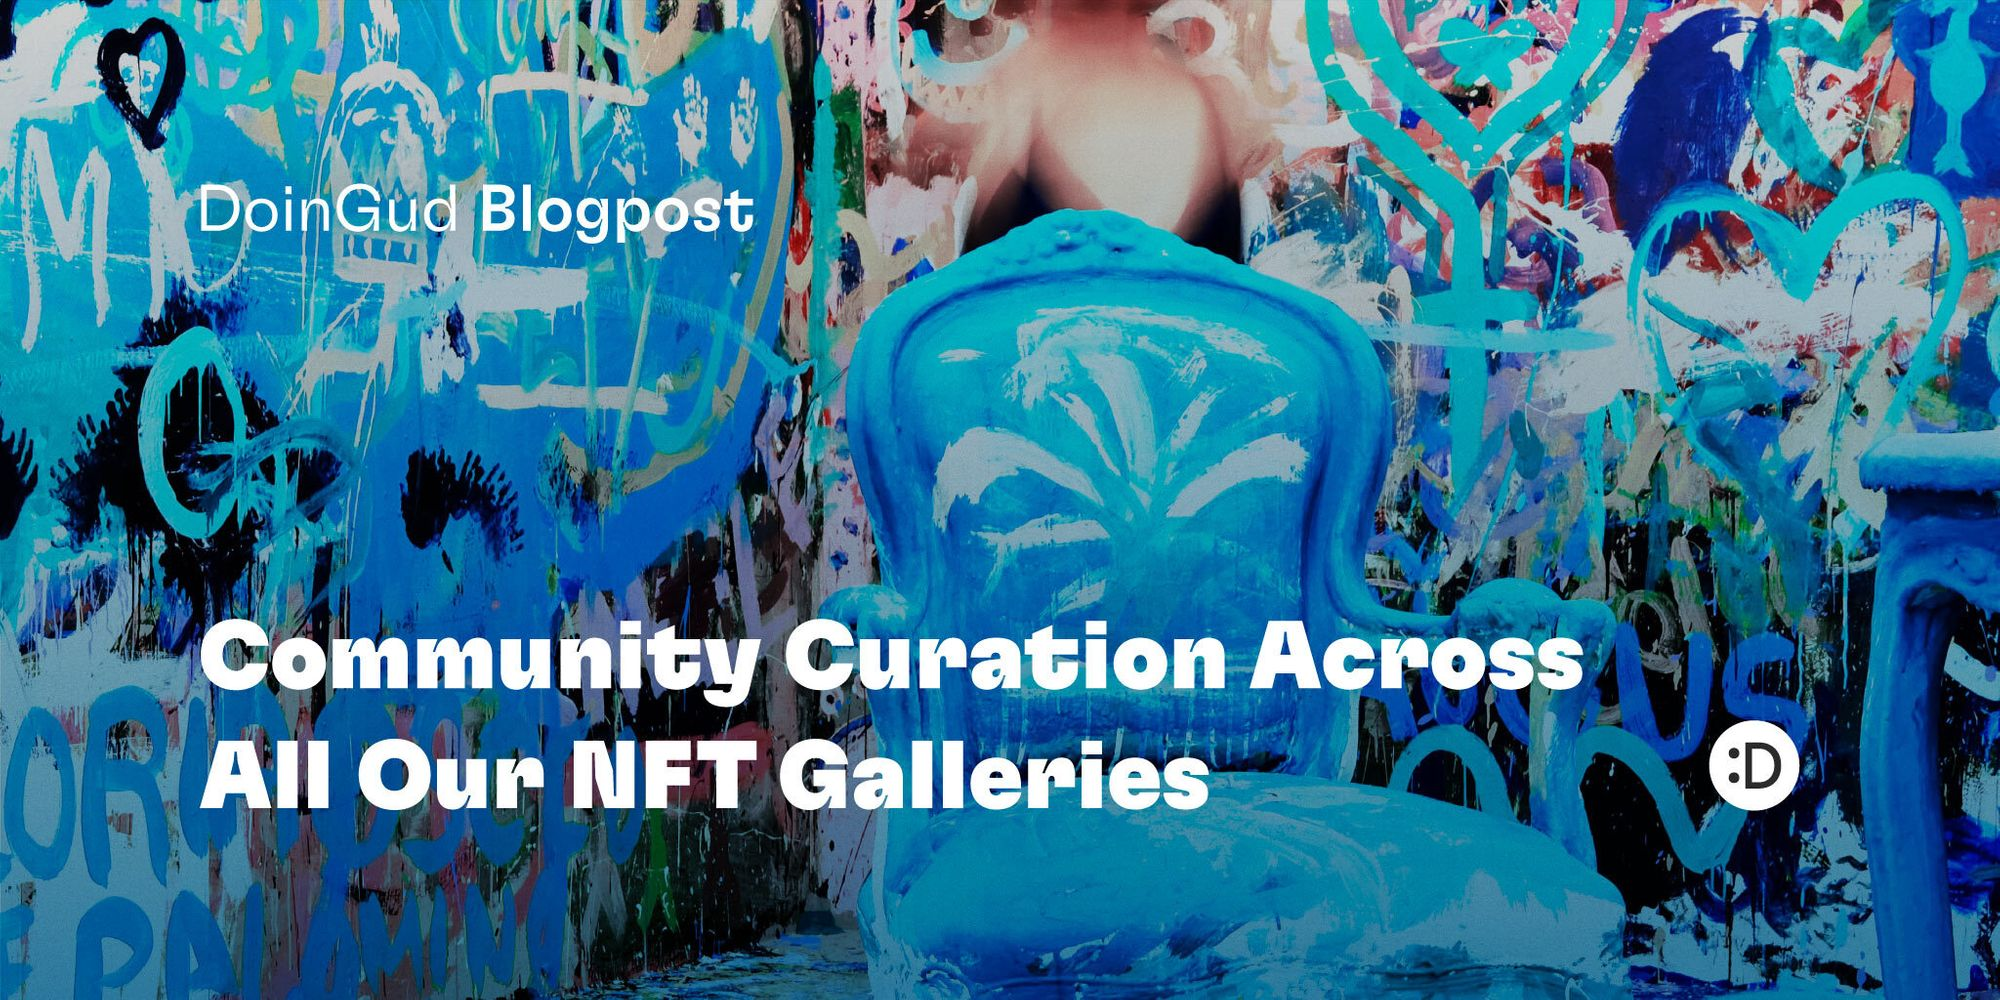 Community Curation Across All Our NFT Galleries